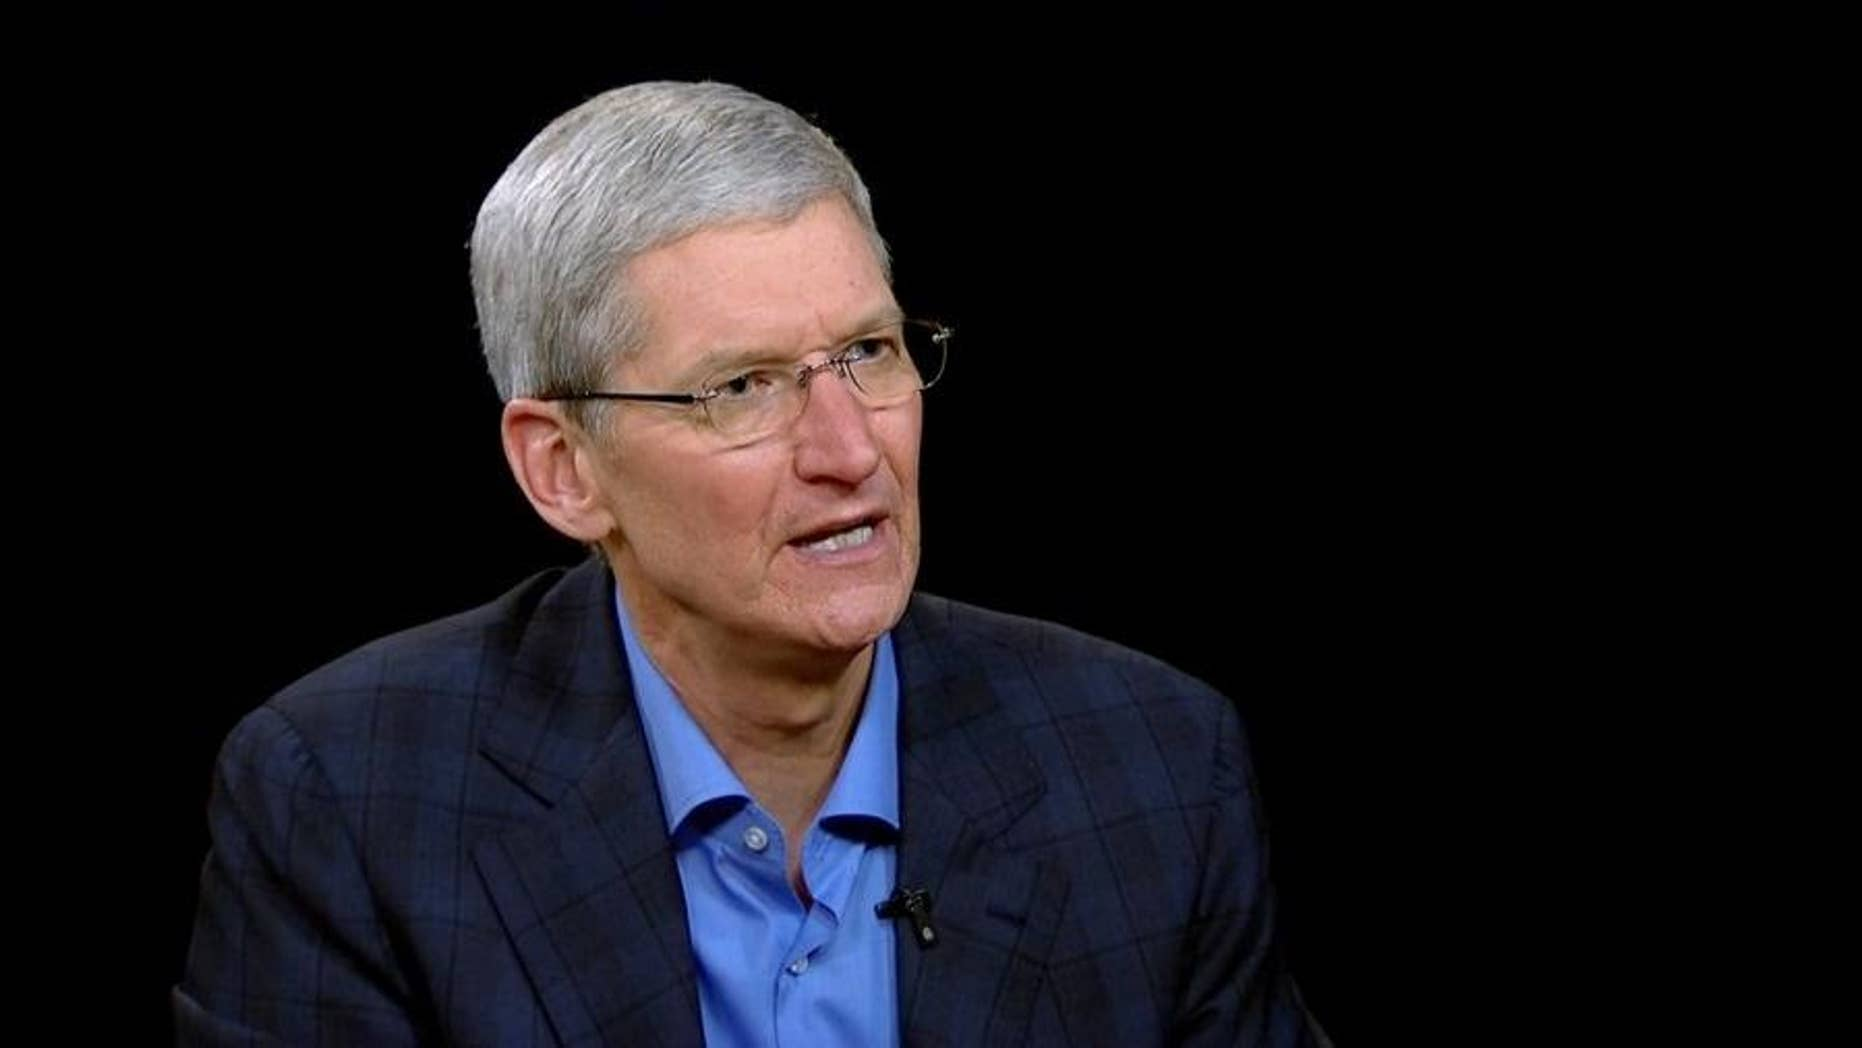 Apple CEO Tim Cook was honored by the Anti-Defamation League on Monday in New York.